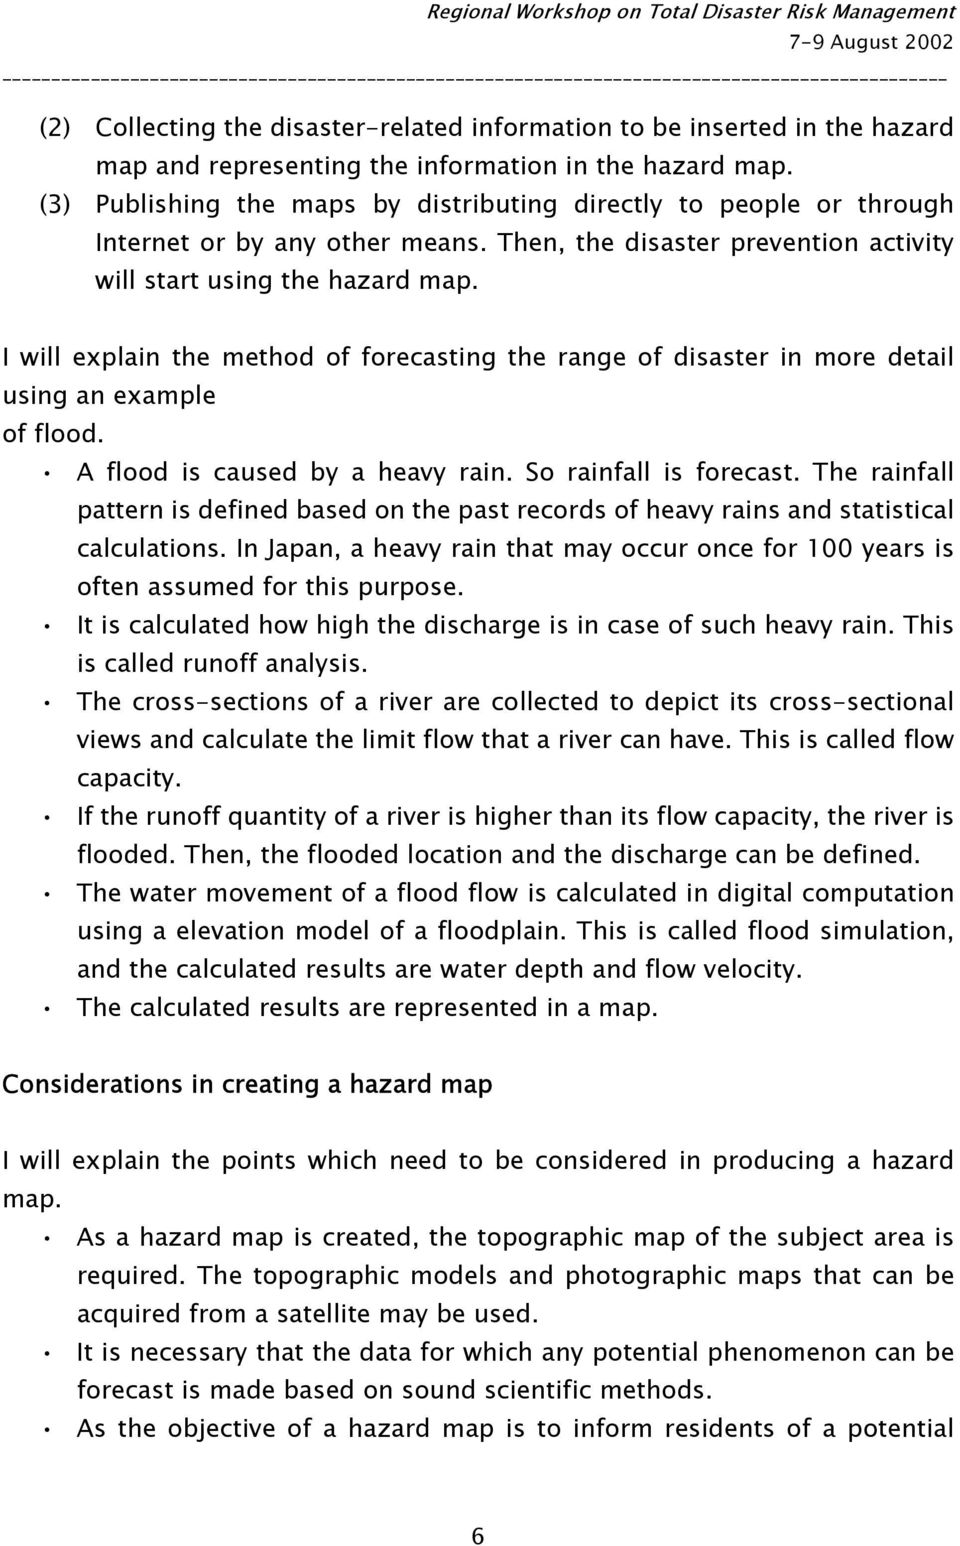 I will explain the method of forecasting the range of disaster in more detail using an example of flood. A flood is caused by a heavy rain. So rainfall is forecast.